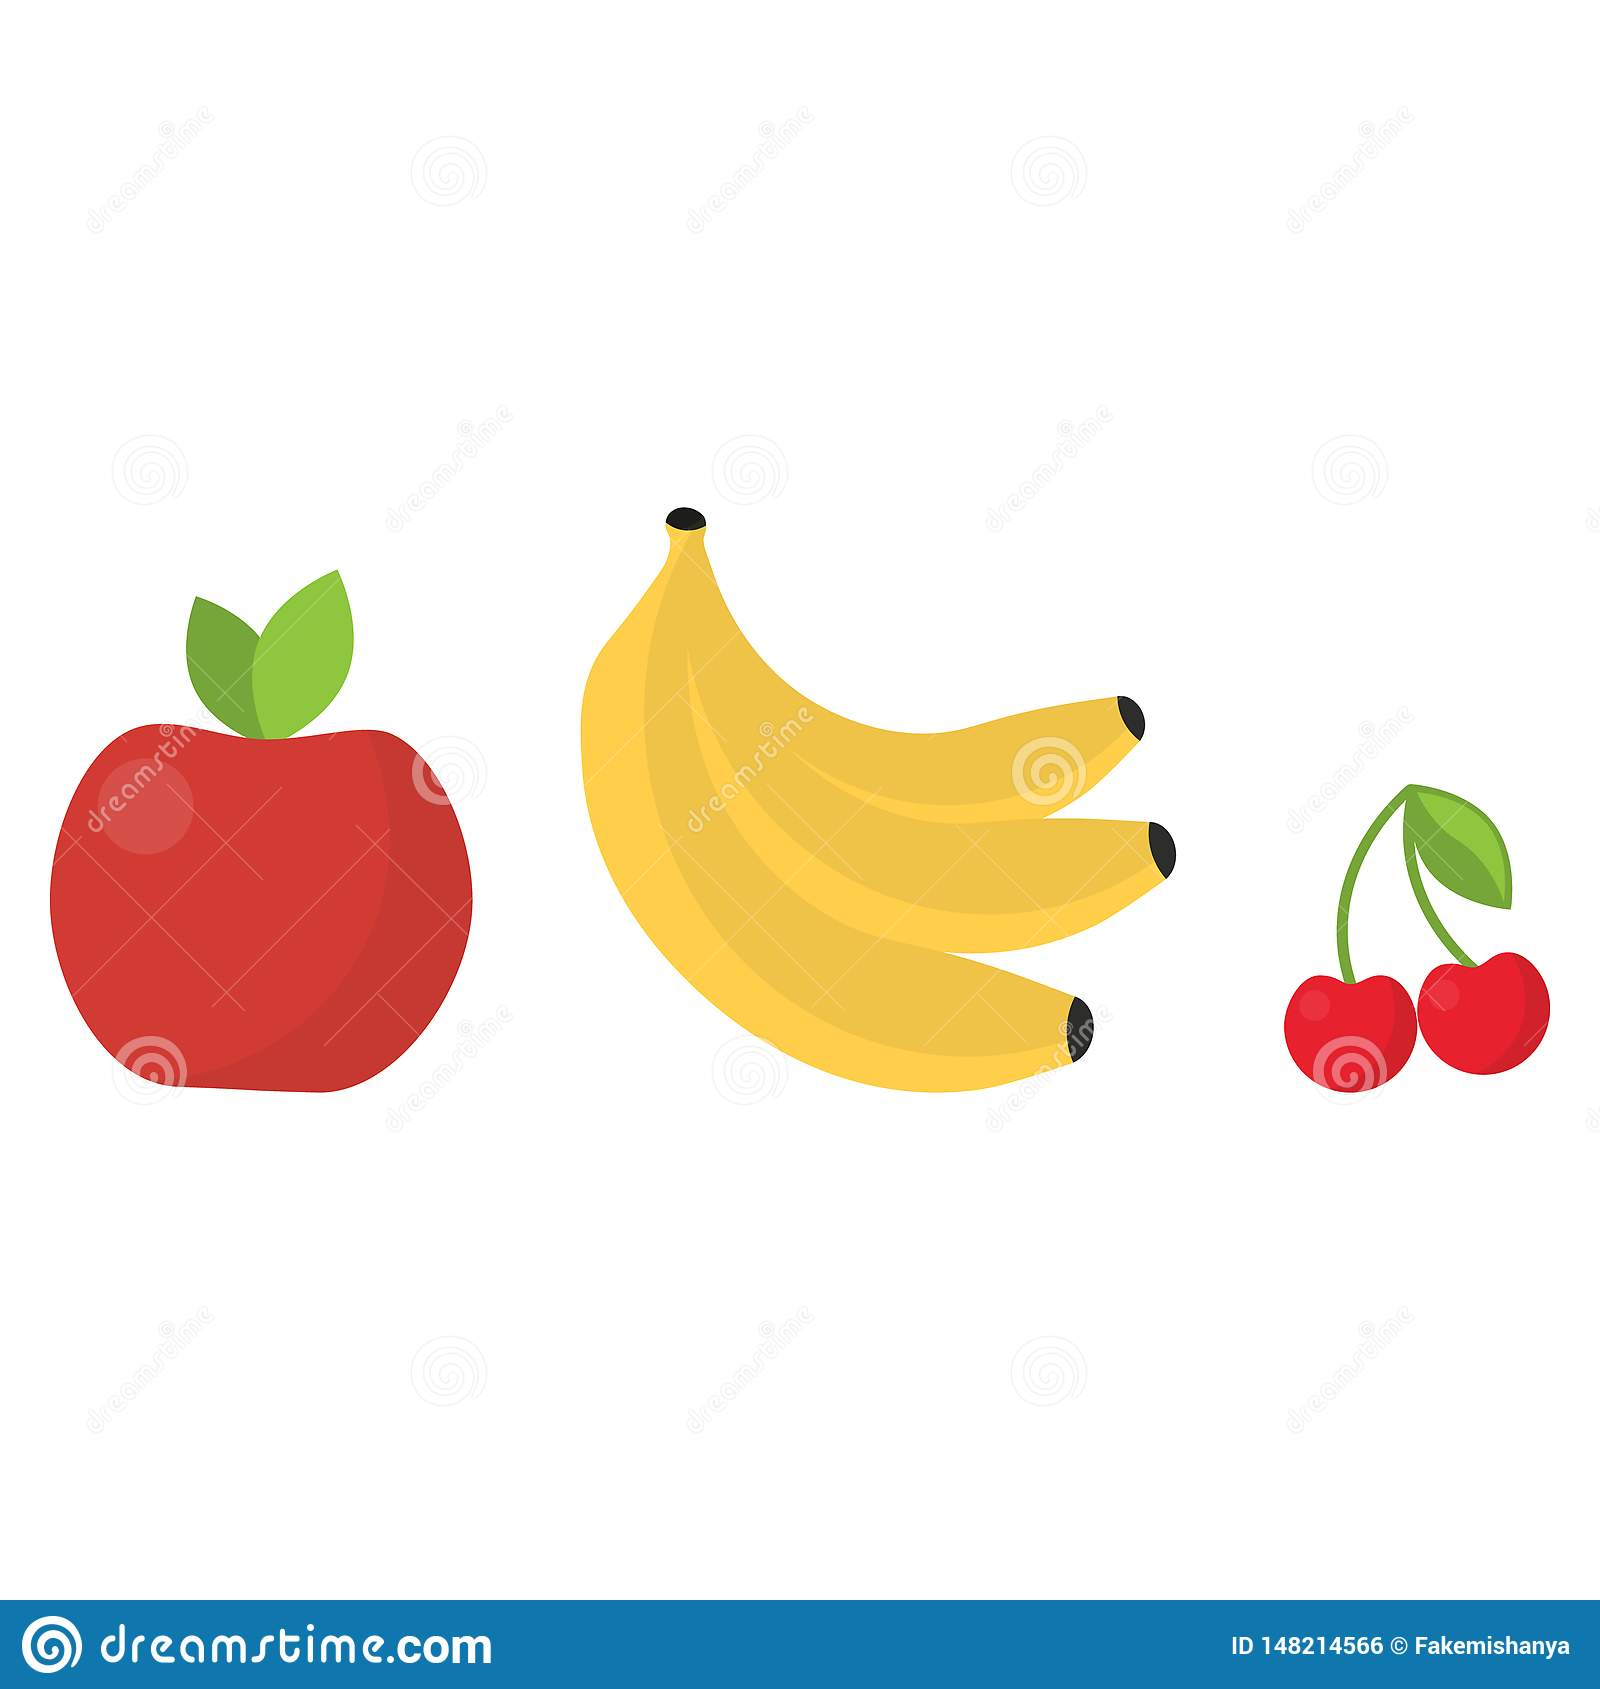 Cute bright colors of fruits vector collections.